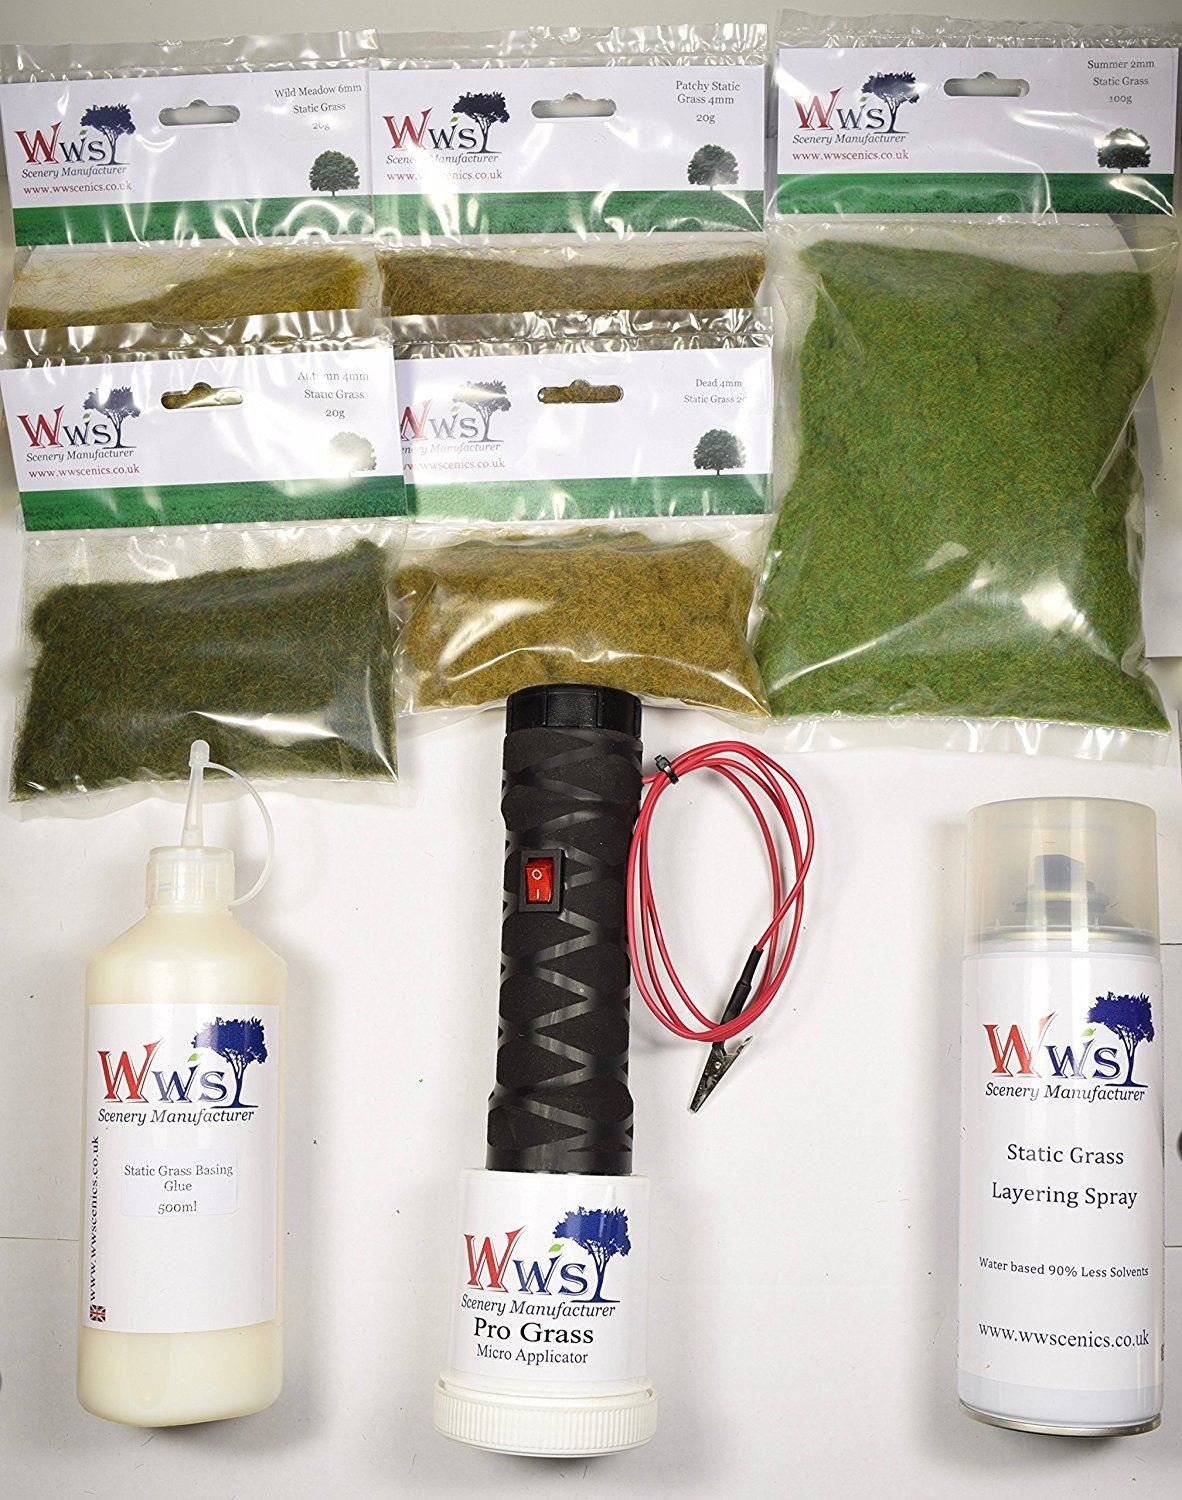 WWS - Micro Static Grass Applicator Scenery Kit MSK0001 by WWS Scenic Manufacturer